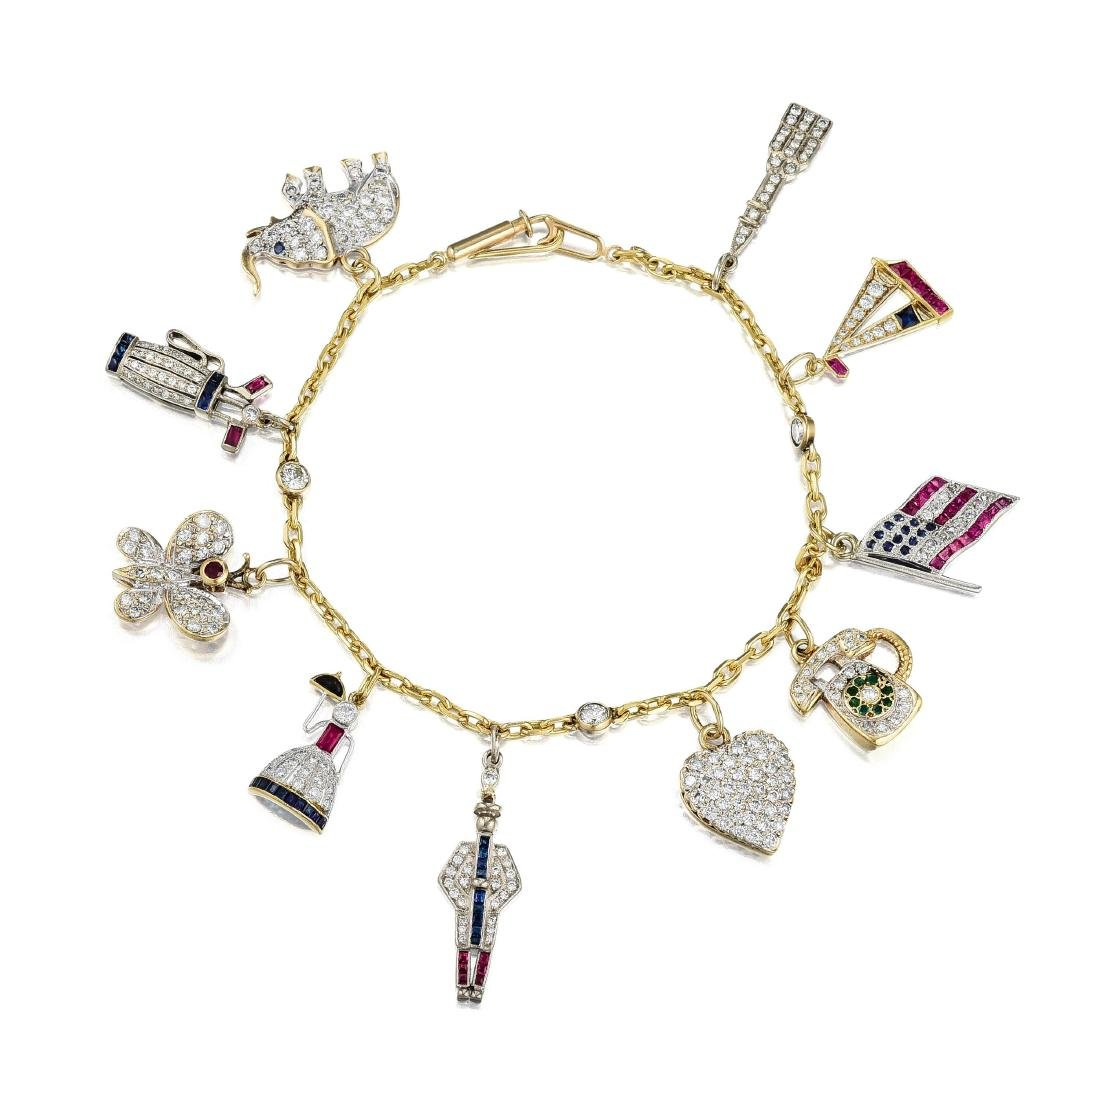 A Diamond and Synthetic Colored Stone Charm Bracelet